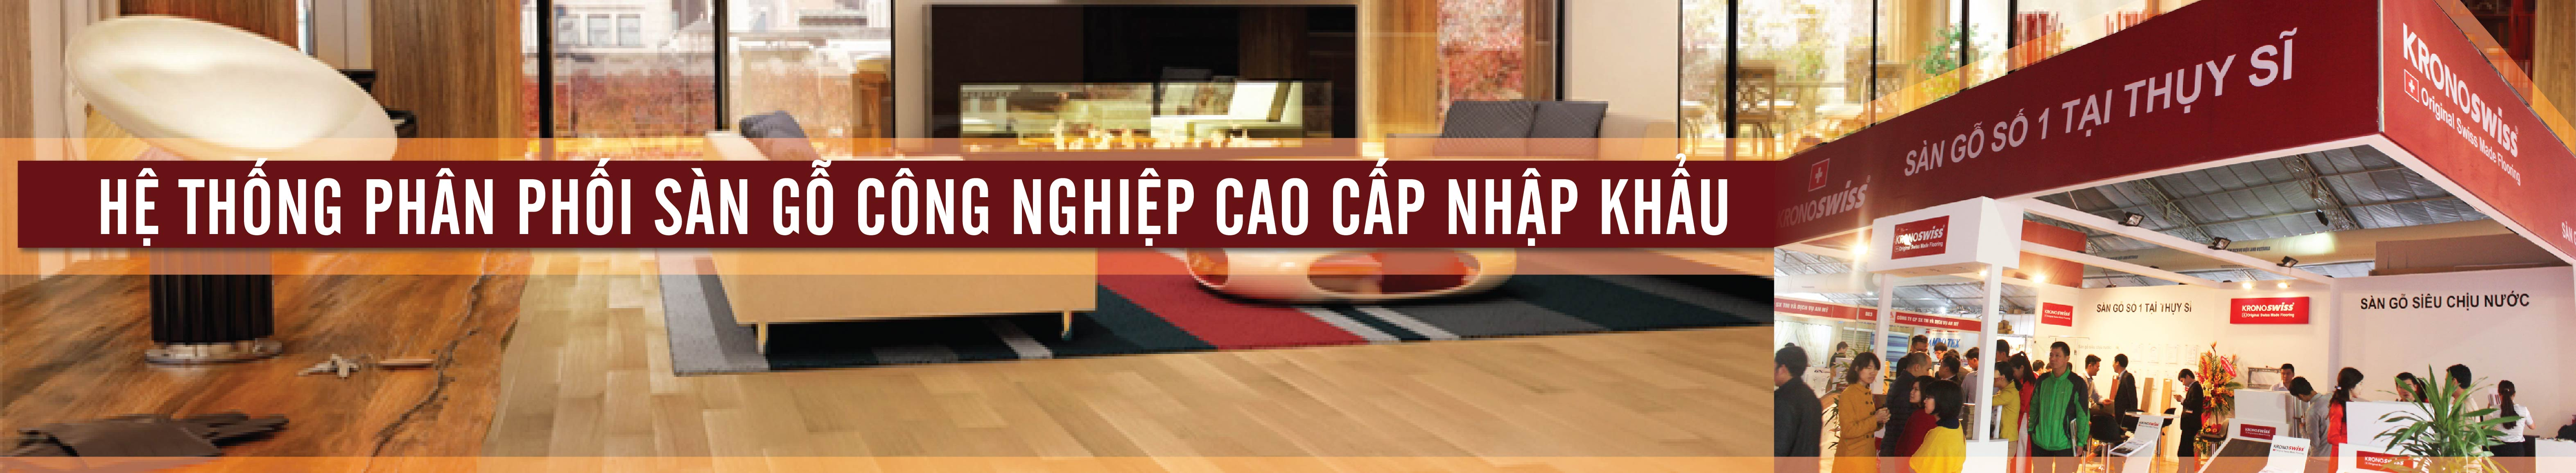 Sàn gỗ công nghiệp giá rẻ, CAO CẤP từ THỤY SĨ